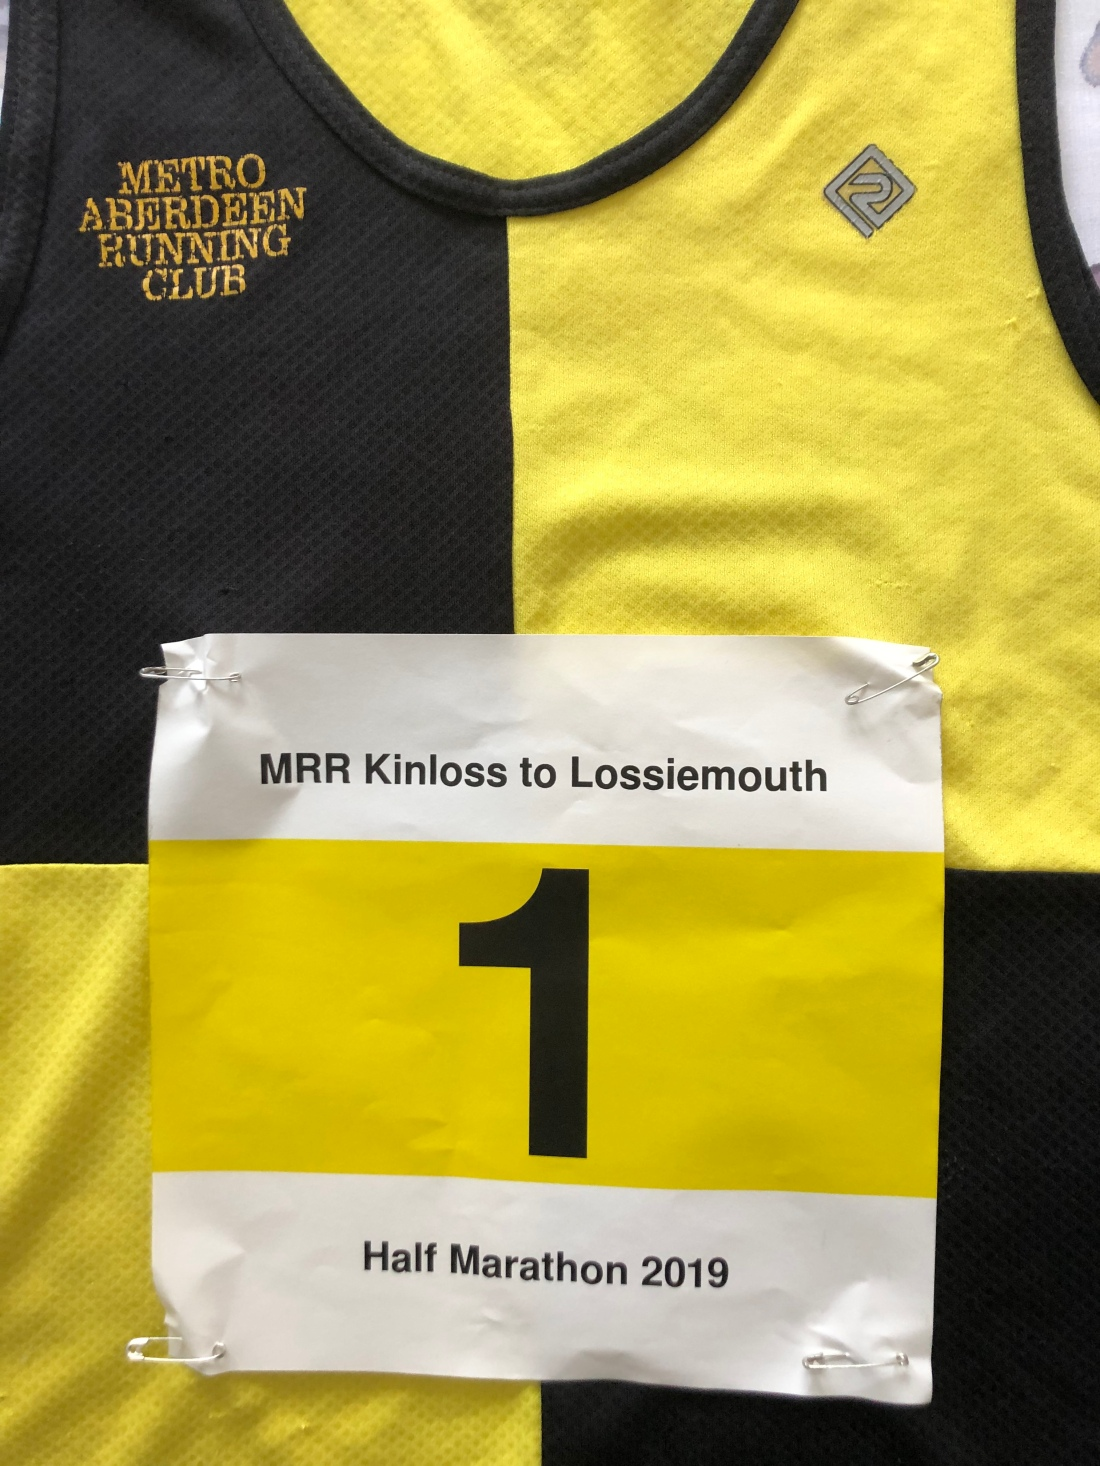 Number 1: Metro Aberdeen do Kinloss to Lossiemouth Half Marathon